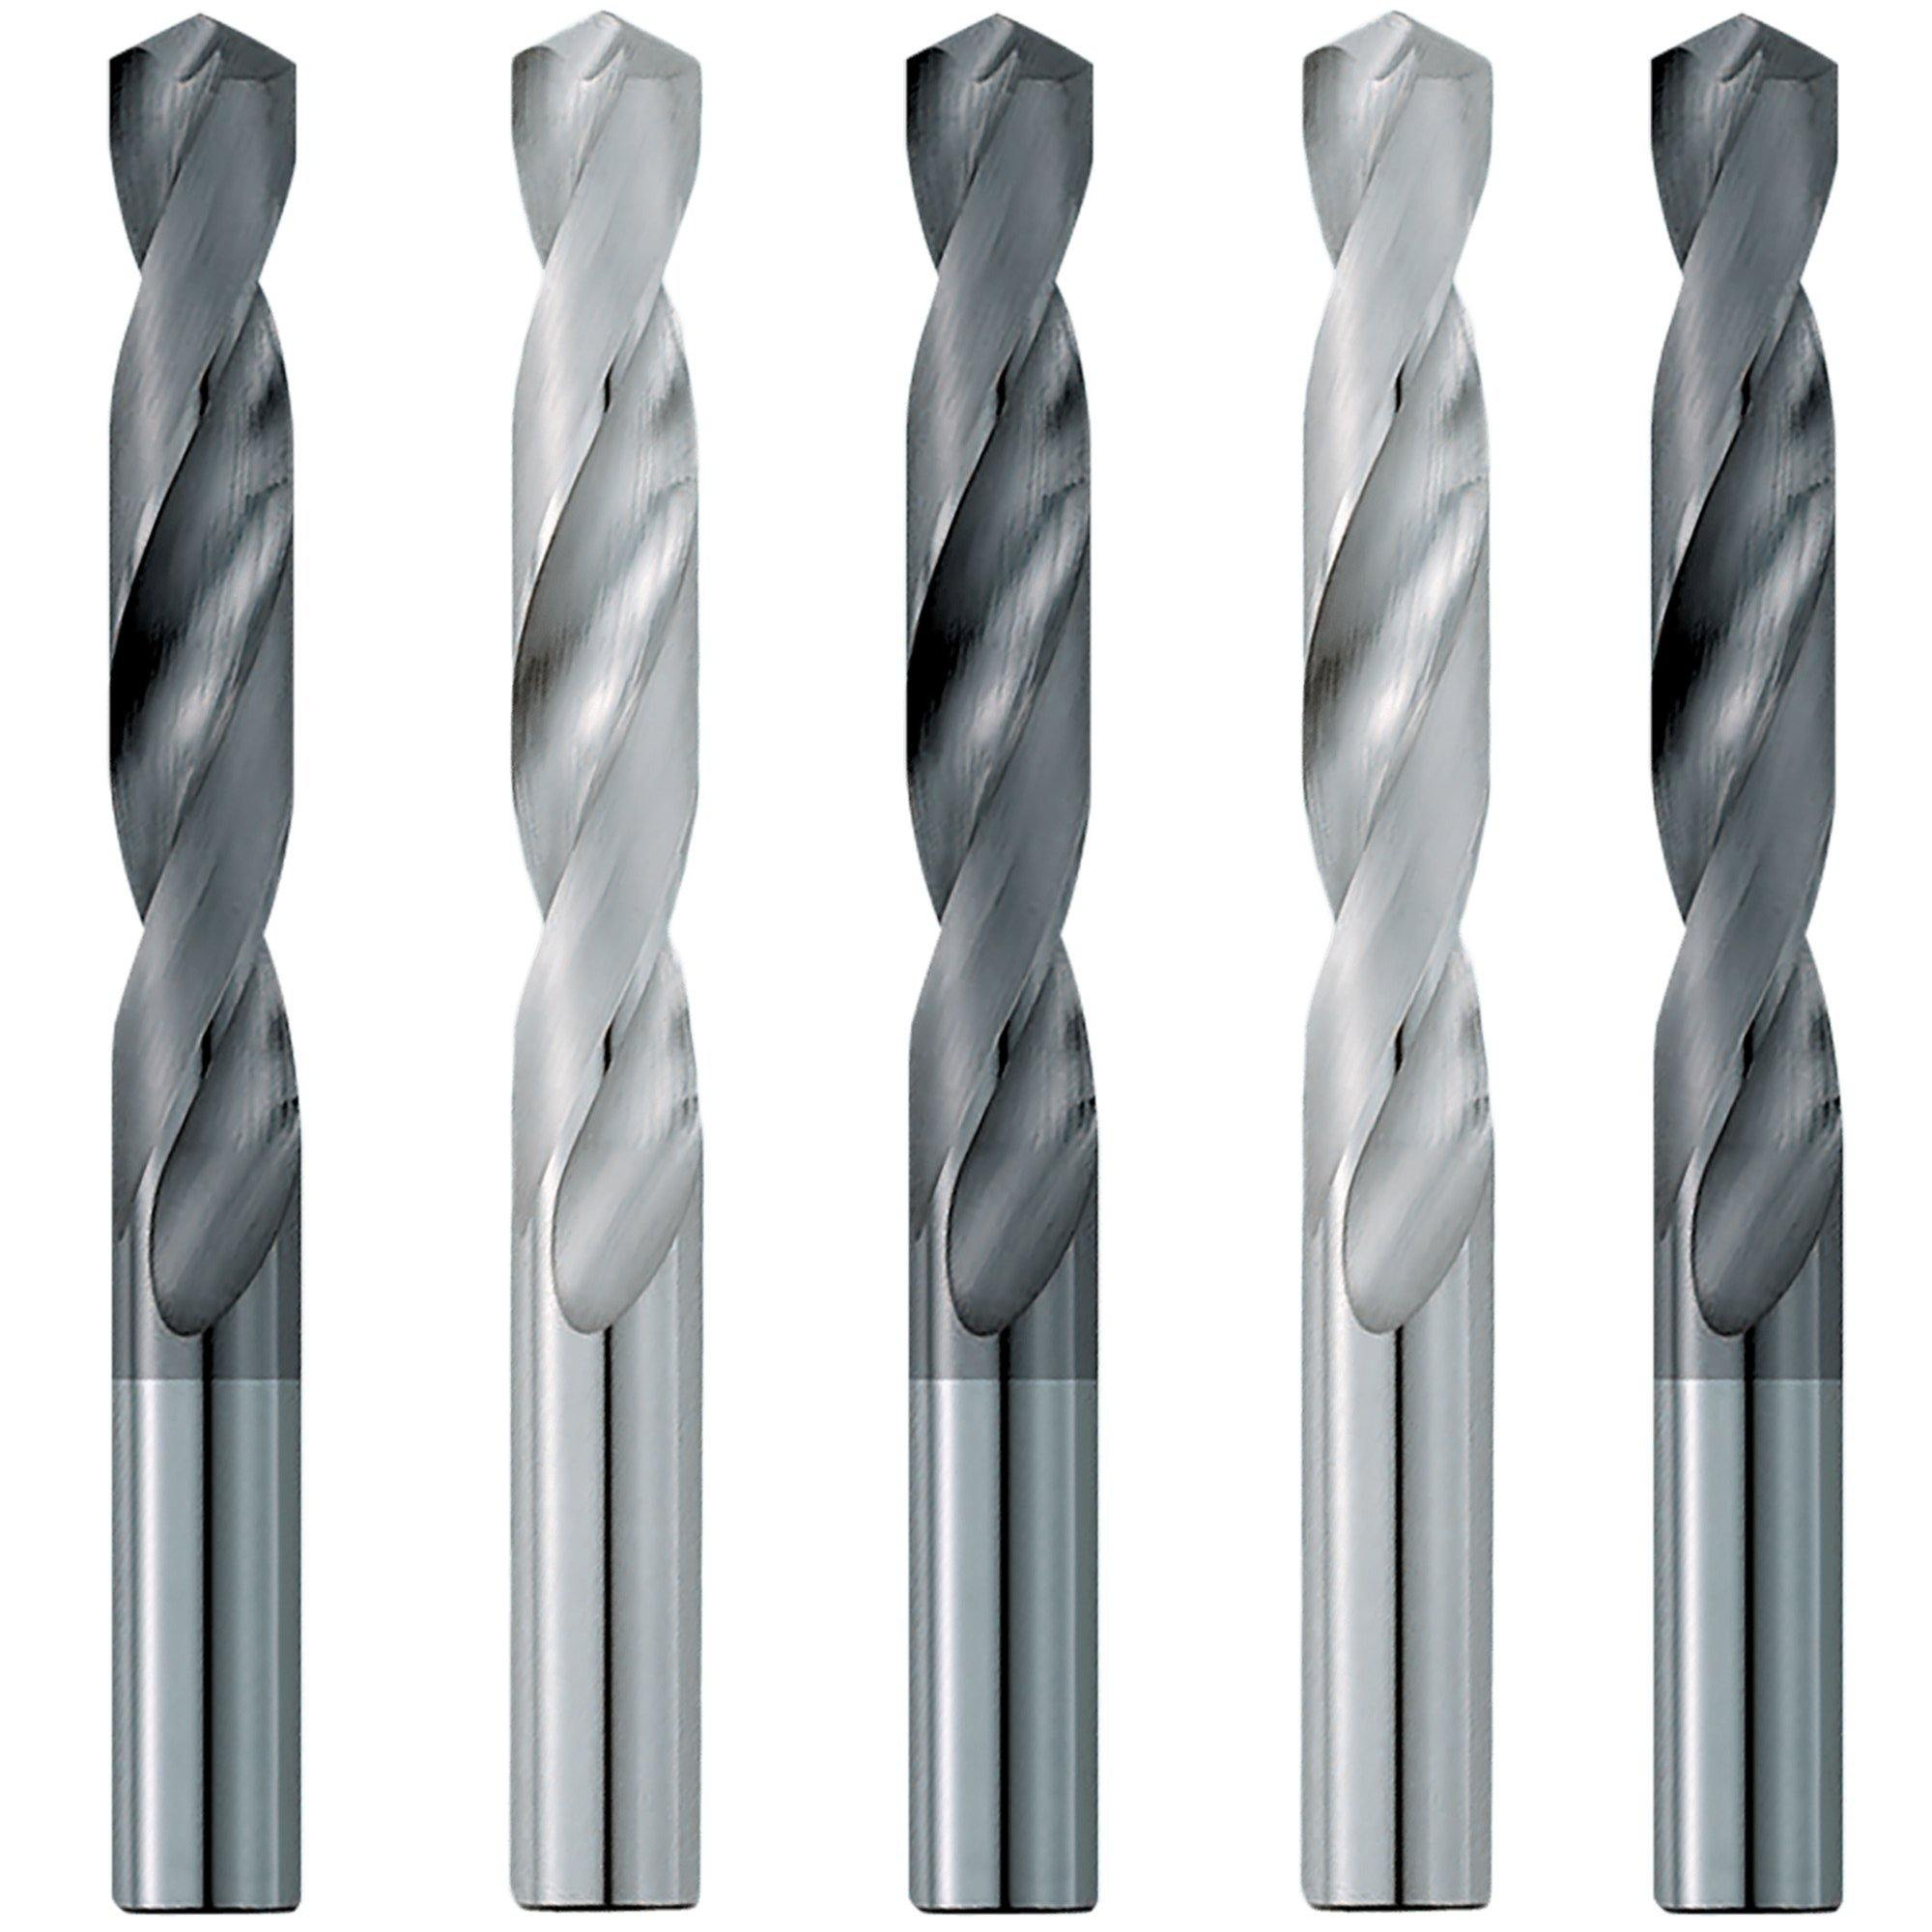 "(5 Pack) 9/16"" Dia. x 3-1/4"" LOF x  5"" OAL Carbide Drill Bits - End Mill Store"